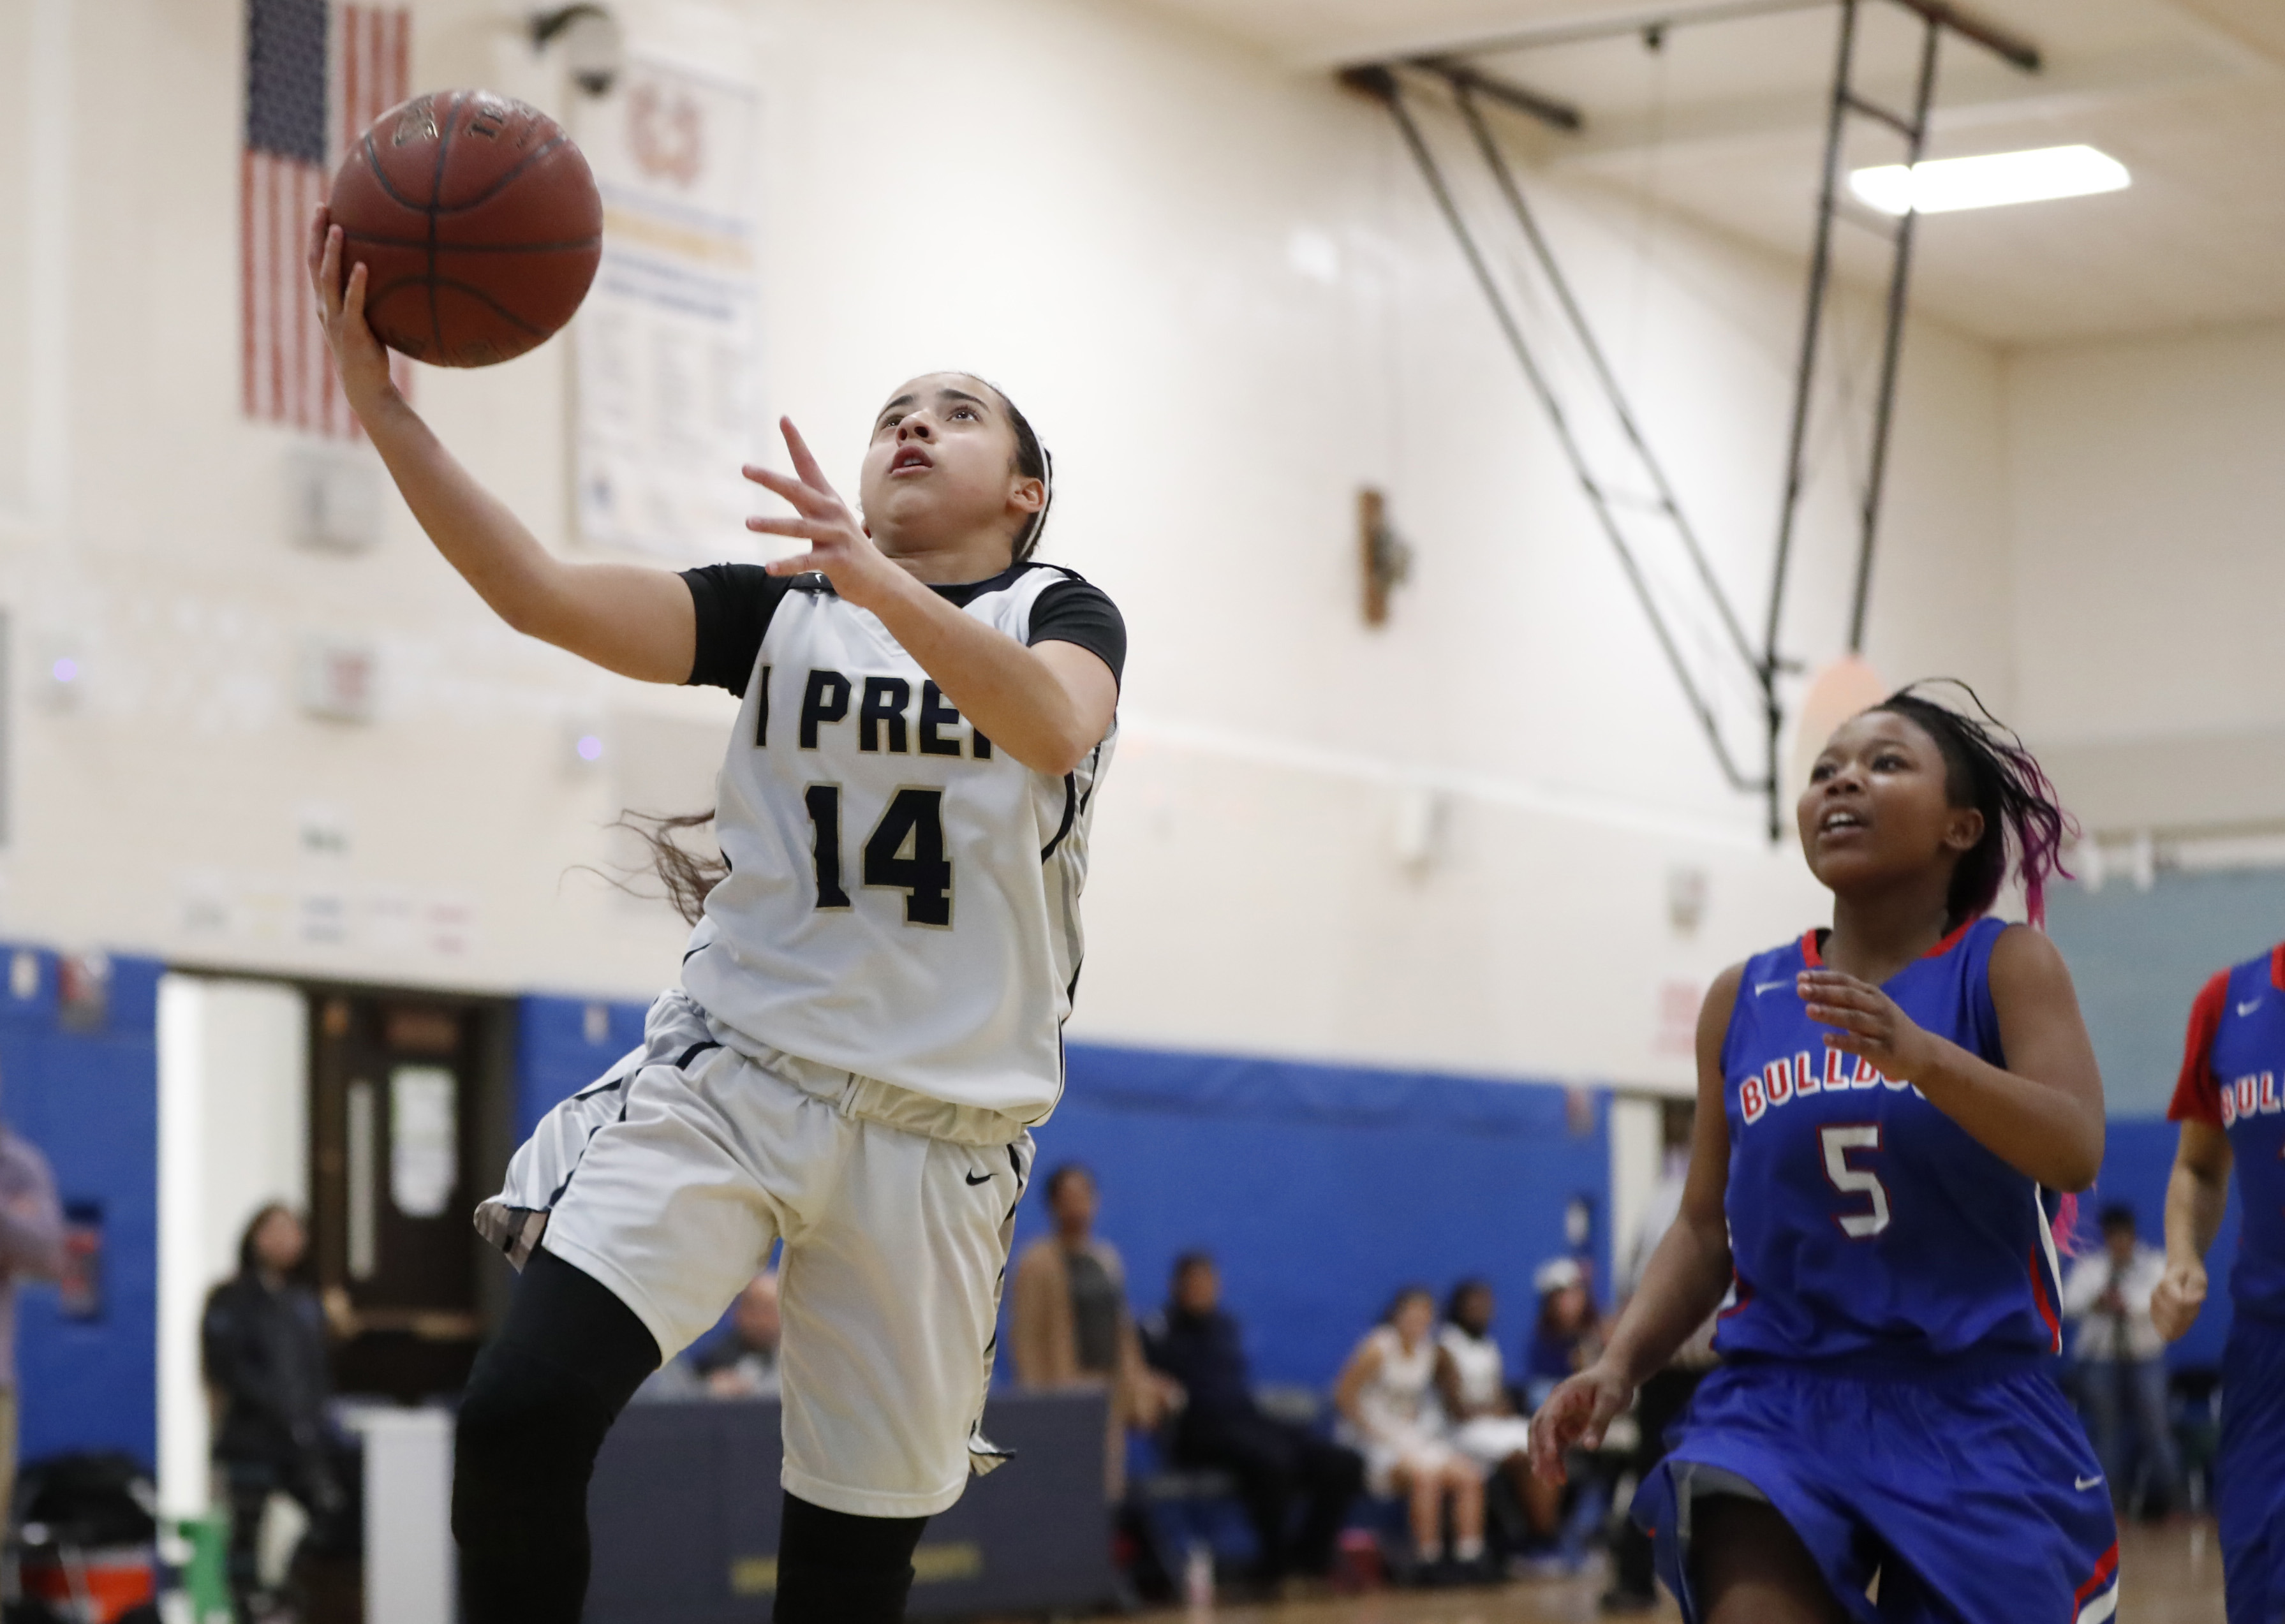 I-Prep/Grover's Adeika Santana Santiago drives to the basket for two points against Burgard  during the Presidents' win on Thursday. (Harry Scull Jr./Buffalo News)